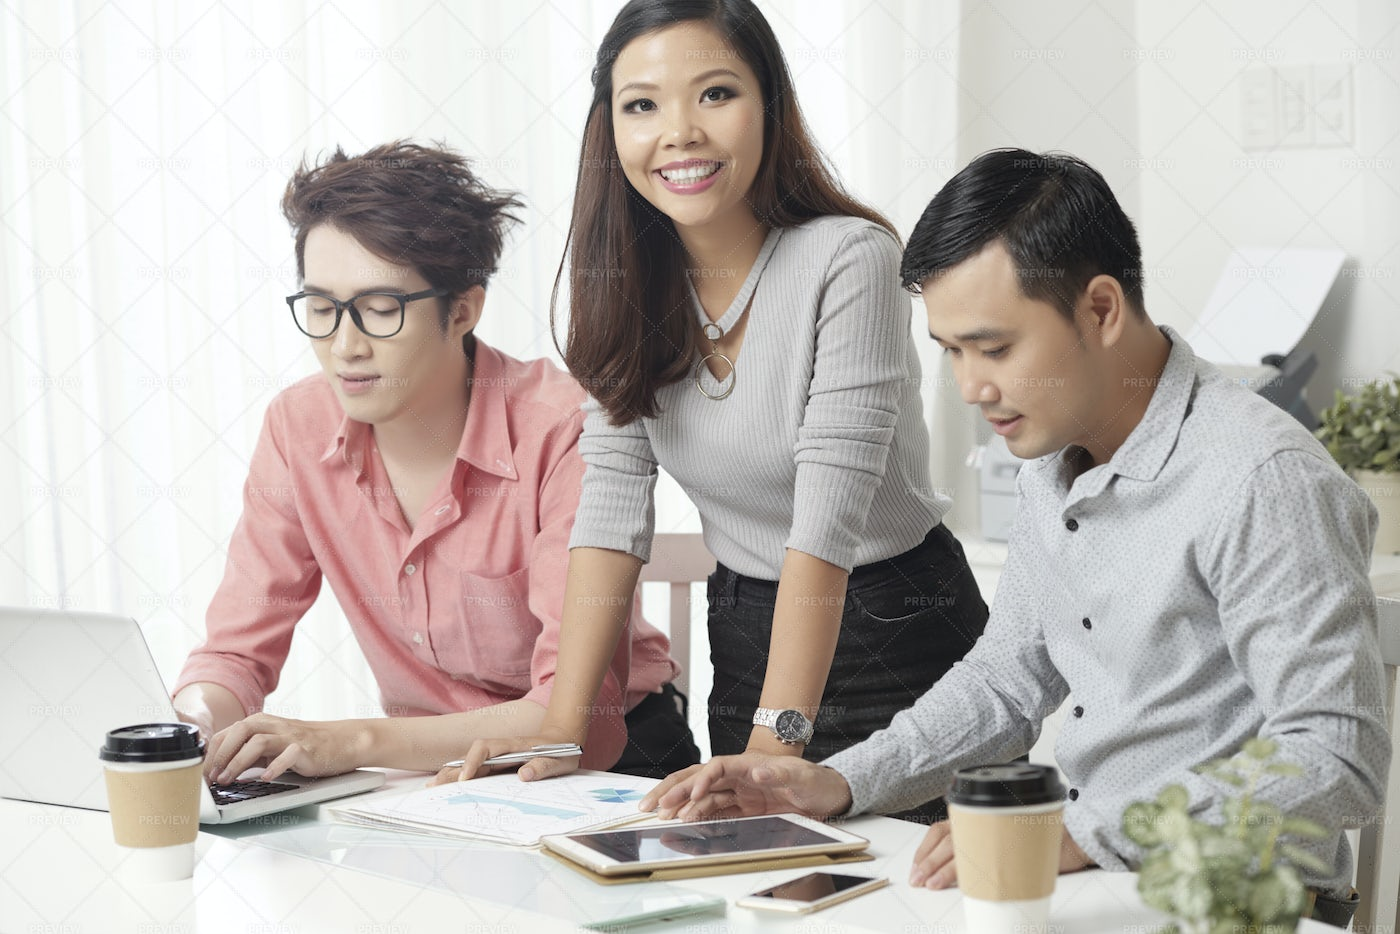 Smiling Woman With Male Colleagues...: Stock Photos